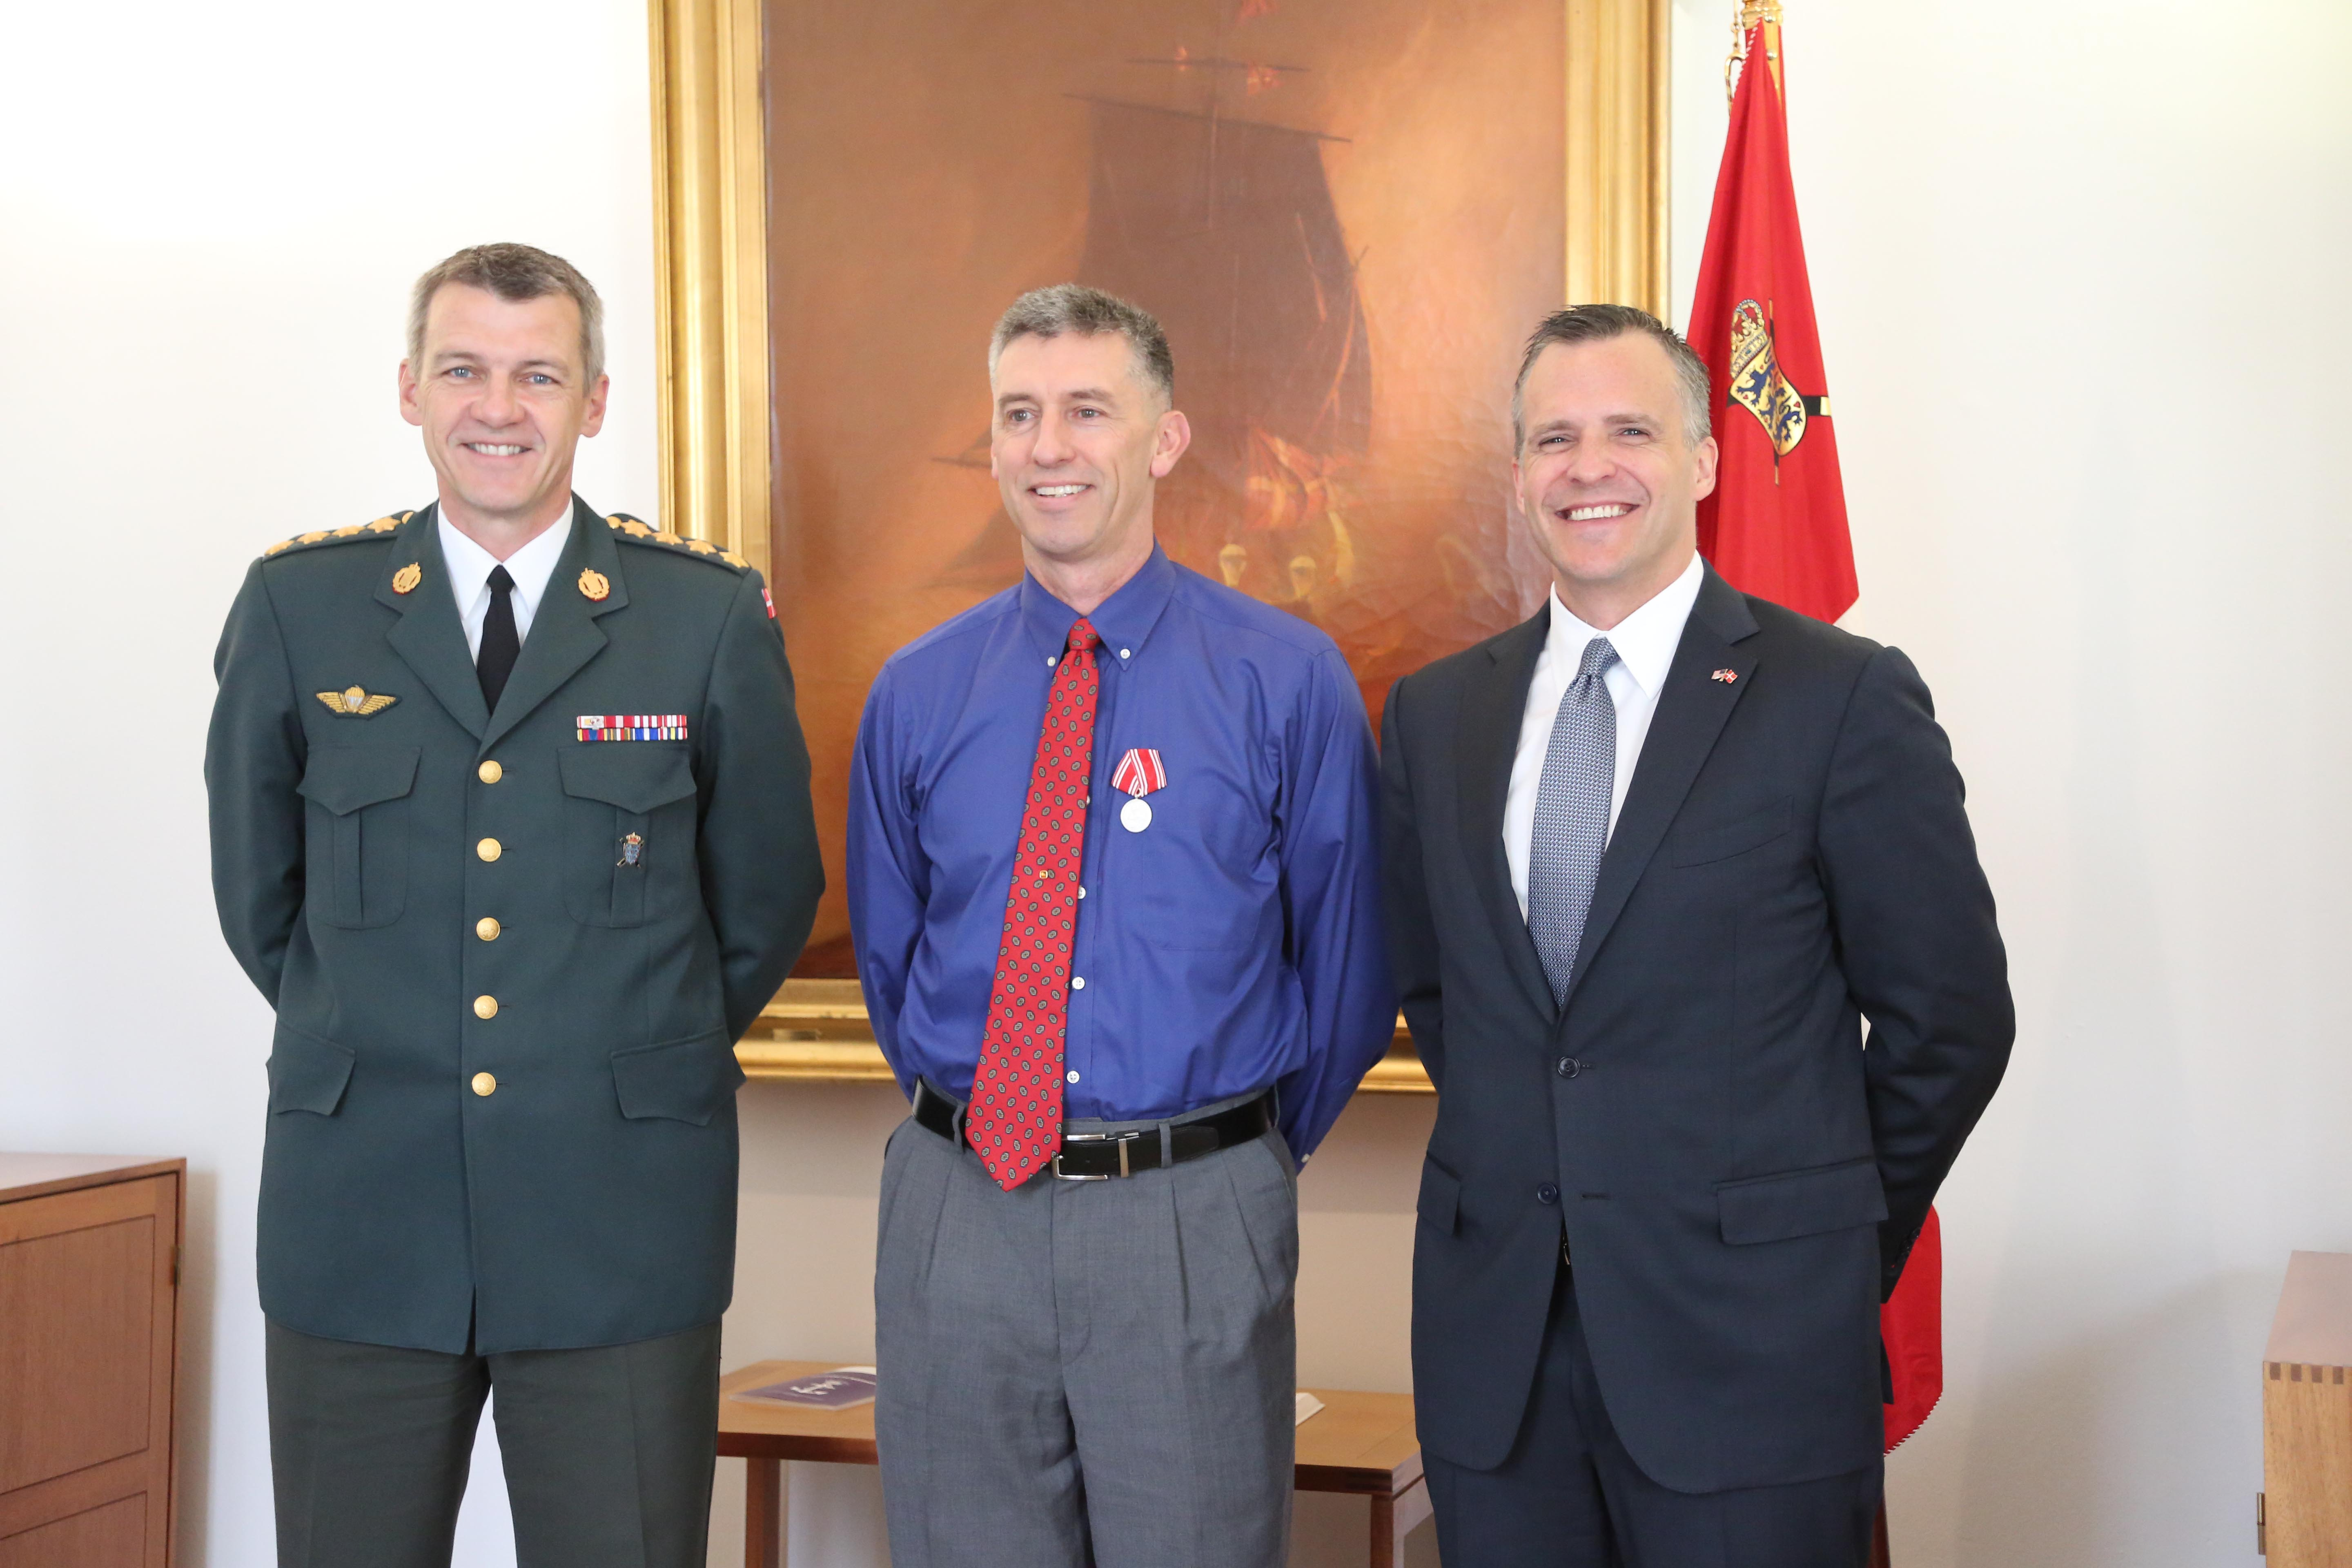 CAPTION:  Capt. Bradley Grimm, center,Texas Army National Guard, receives the Danish Defense Medal for Special Meritorious Efforts by Danish Defense Gen. Peter Bartram, left, and American ambassador to Denmark Rufus Gifford, right, at a ceremony held in Denmark, April 19, 2016.  Grimm was instrumental in foiling a terrorist plot to bomb a Danish school and assisted Danish security forces in making an arrest. (Danish Military photo by Sune Wadskjær/Released)